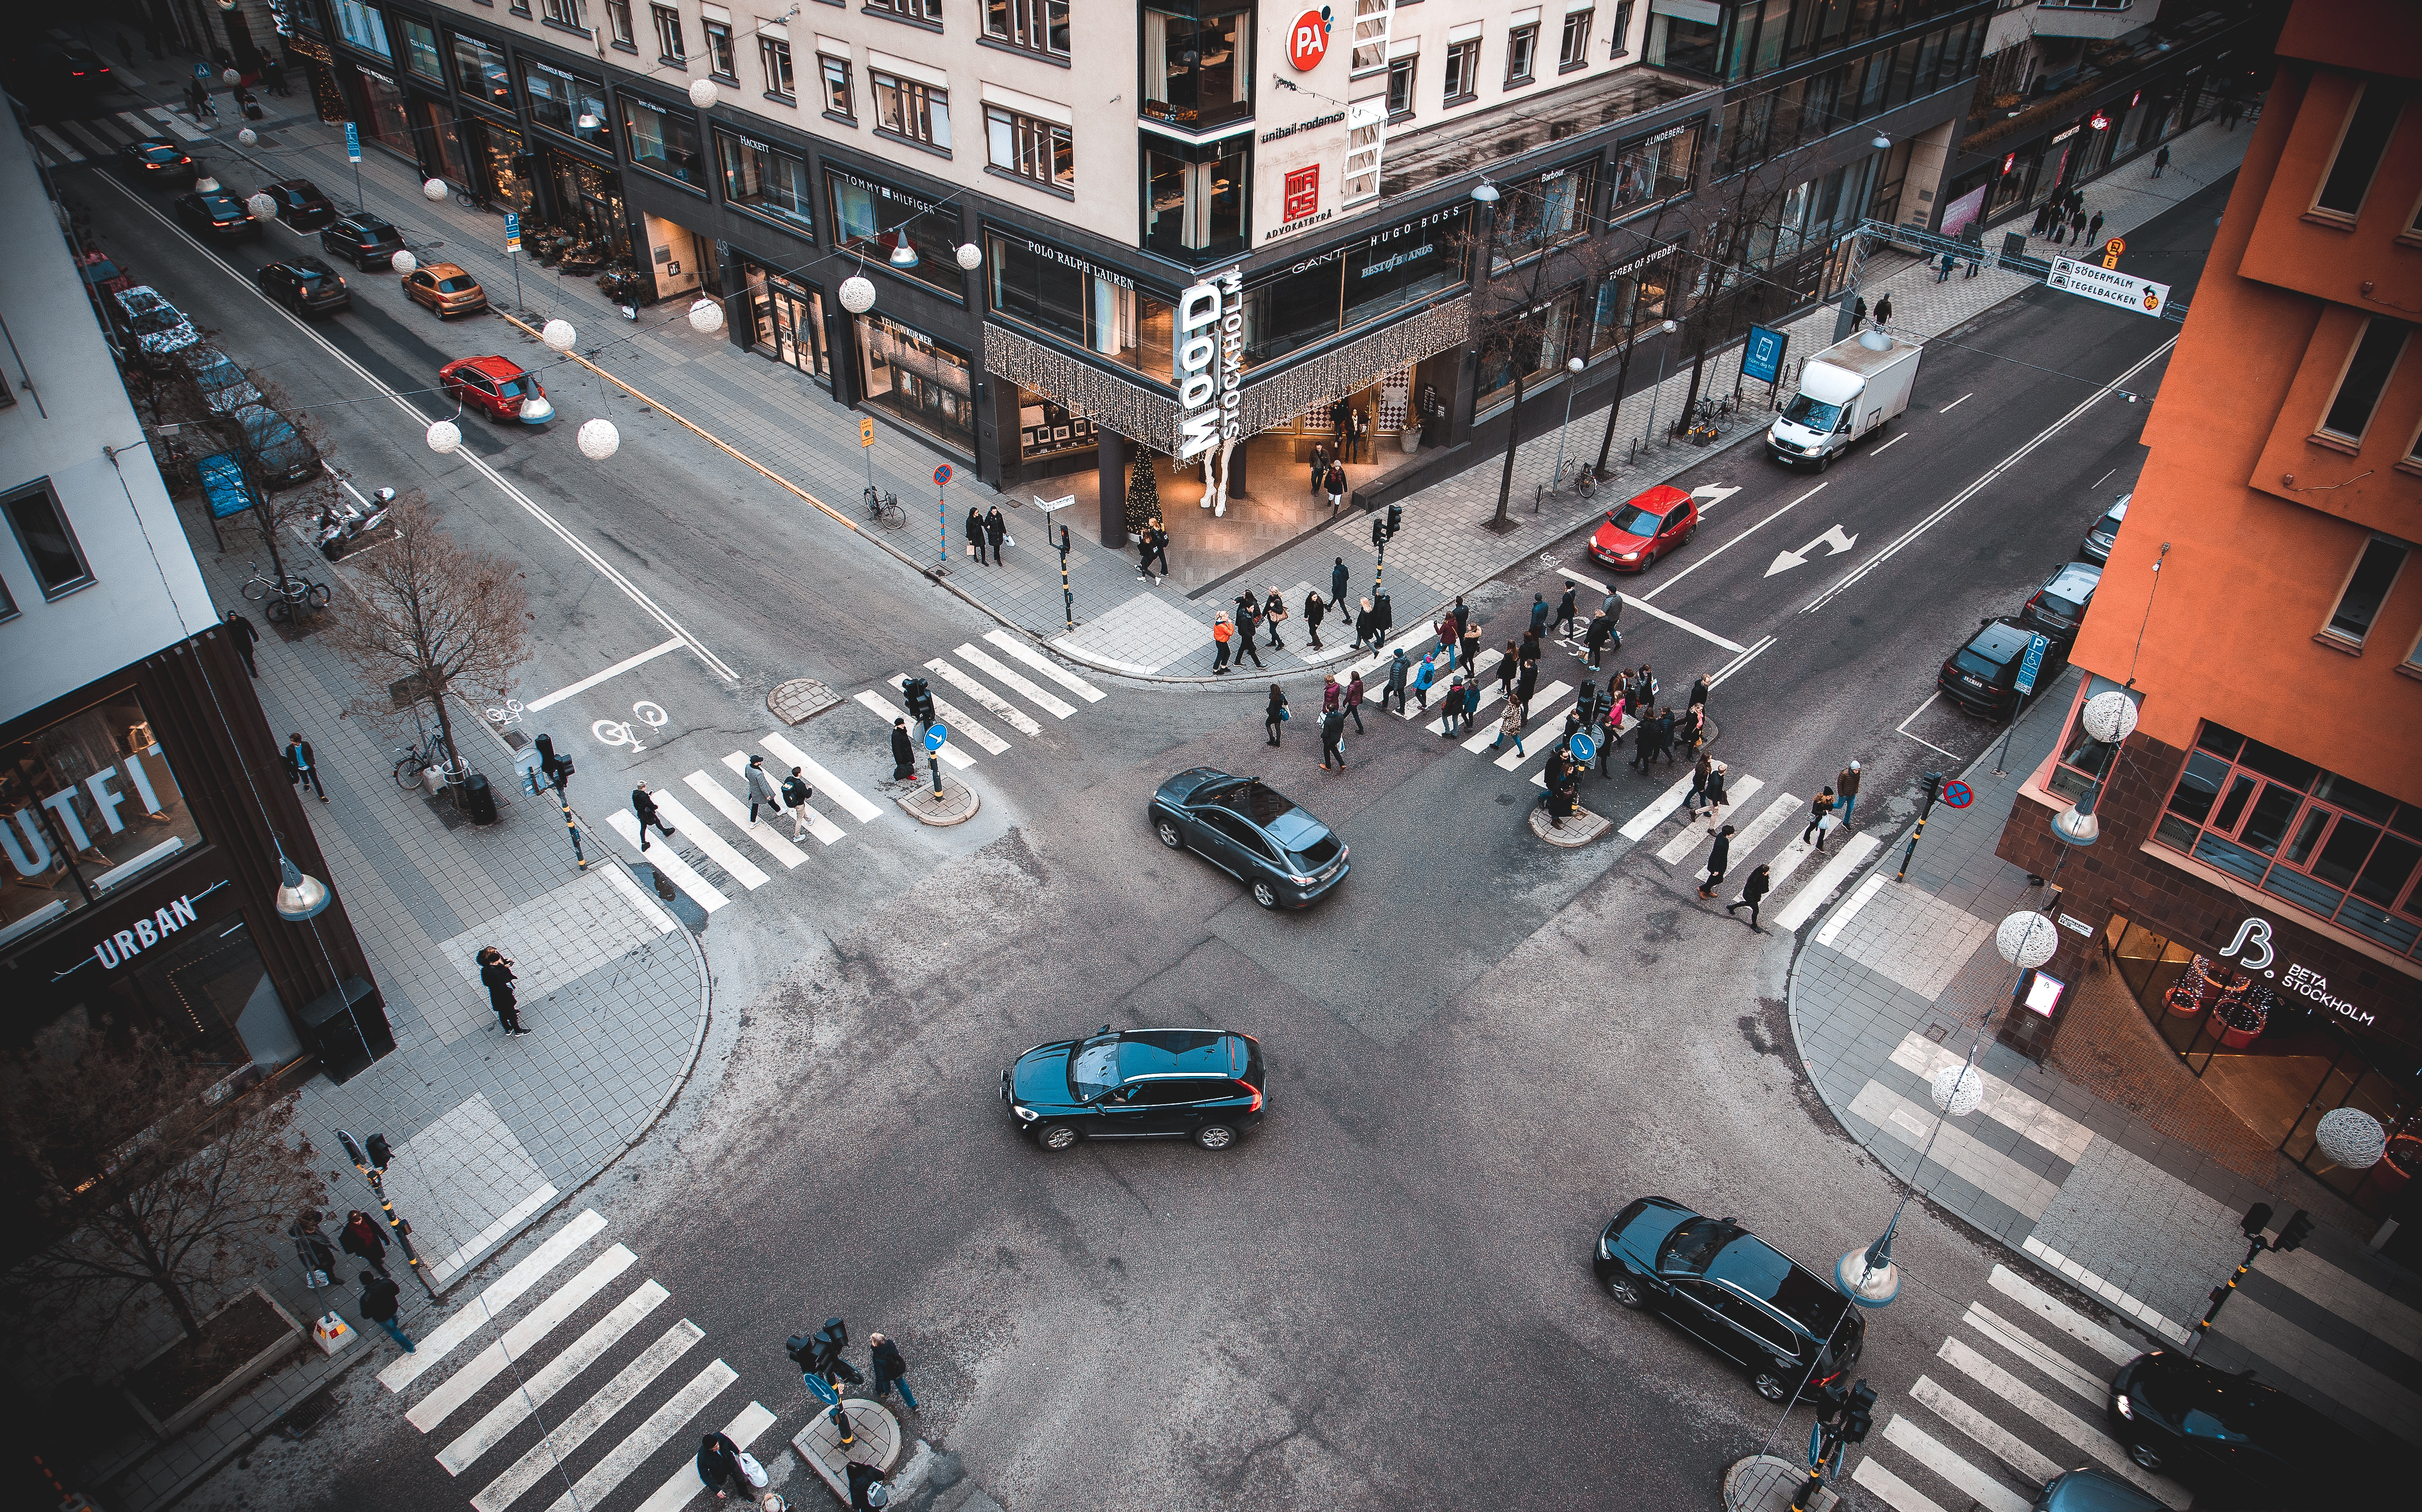 People walking on the streets